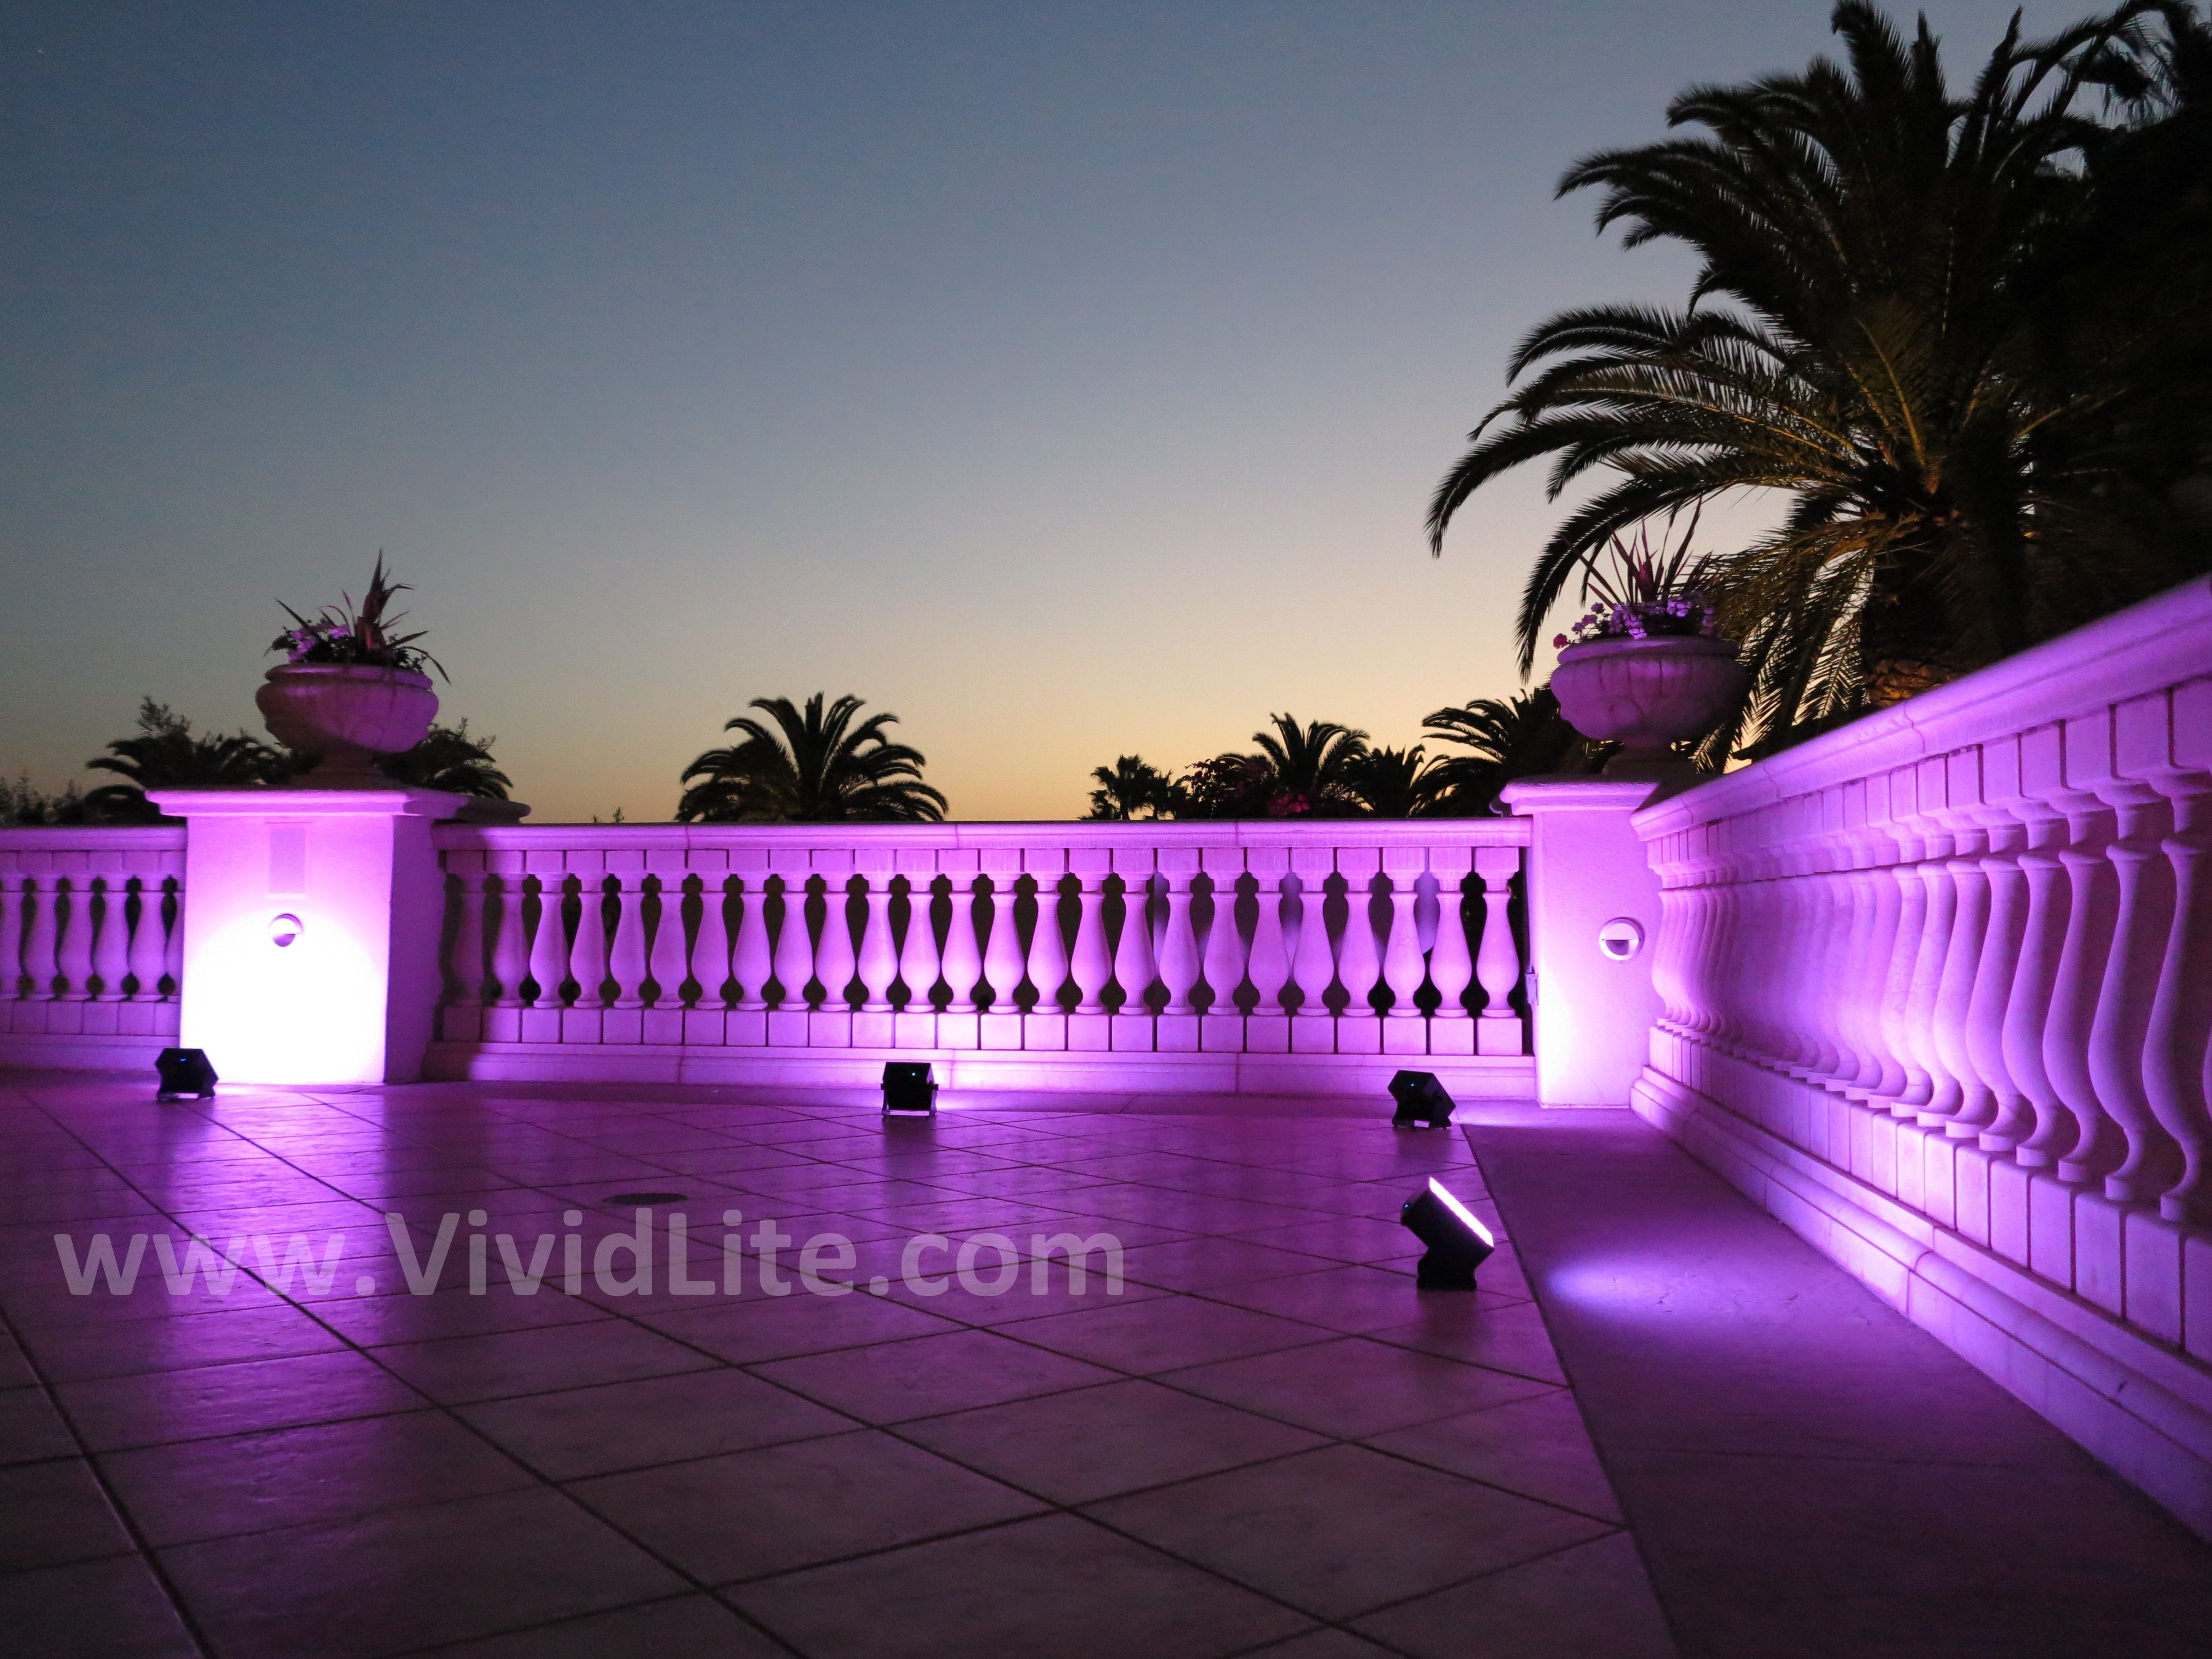 Transform atmospheres with colorful wireless lighting made simple with VividLite's wireless LED fixtures. #VividLite #WirelessLEDLight #UpLight